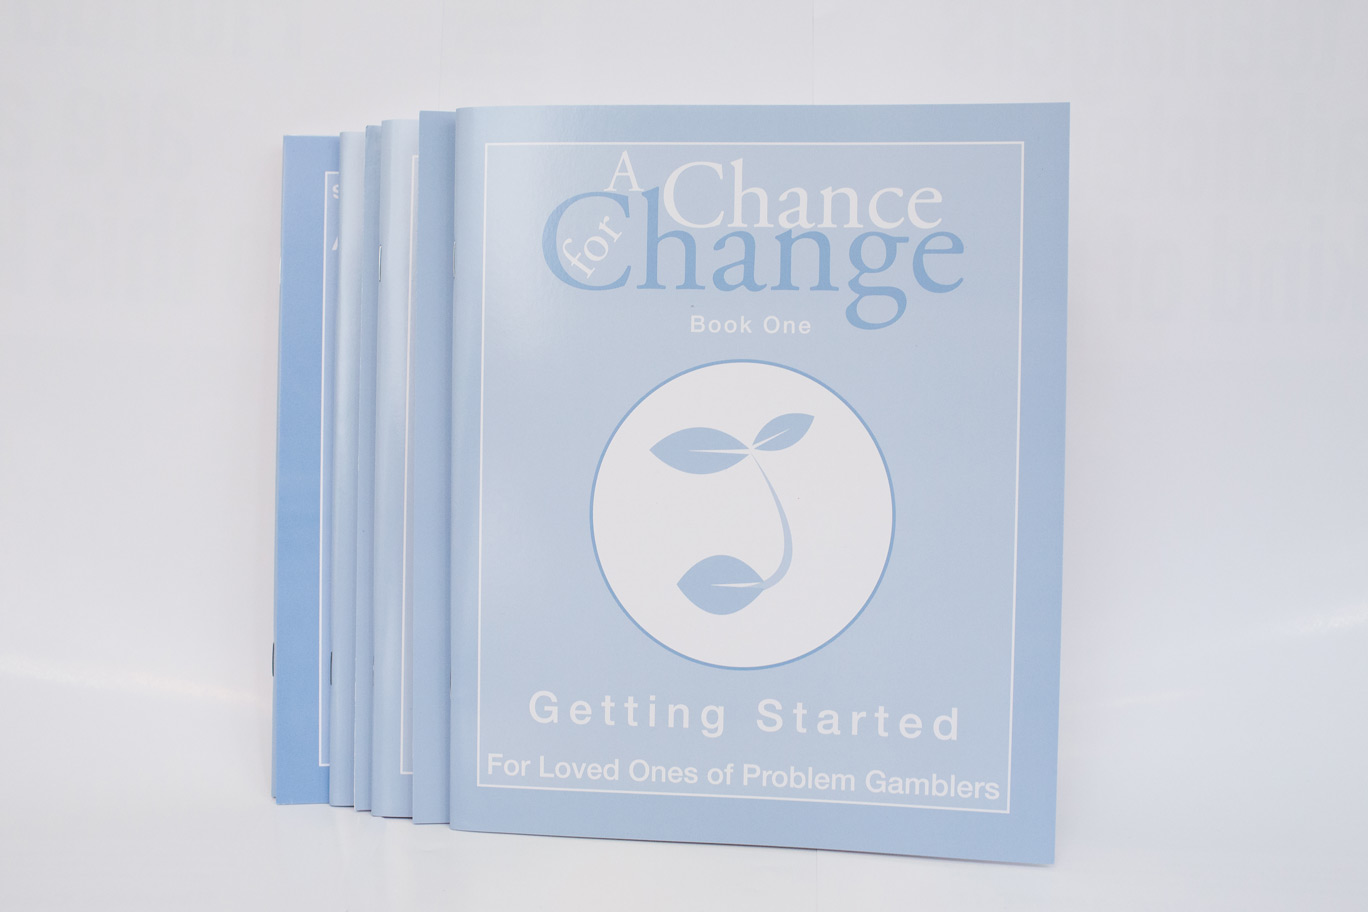 A Chance for Change: For Loved Ones of Problem Gamblers